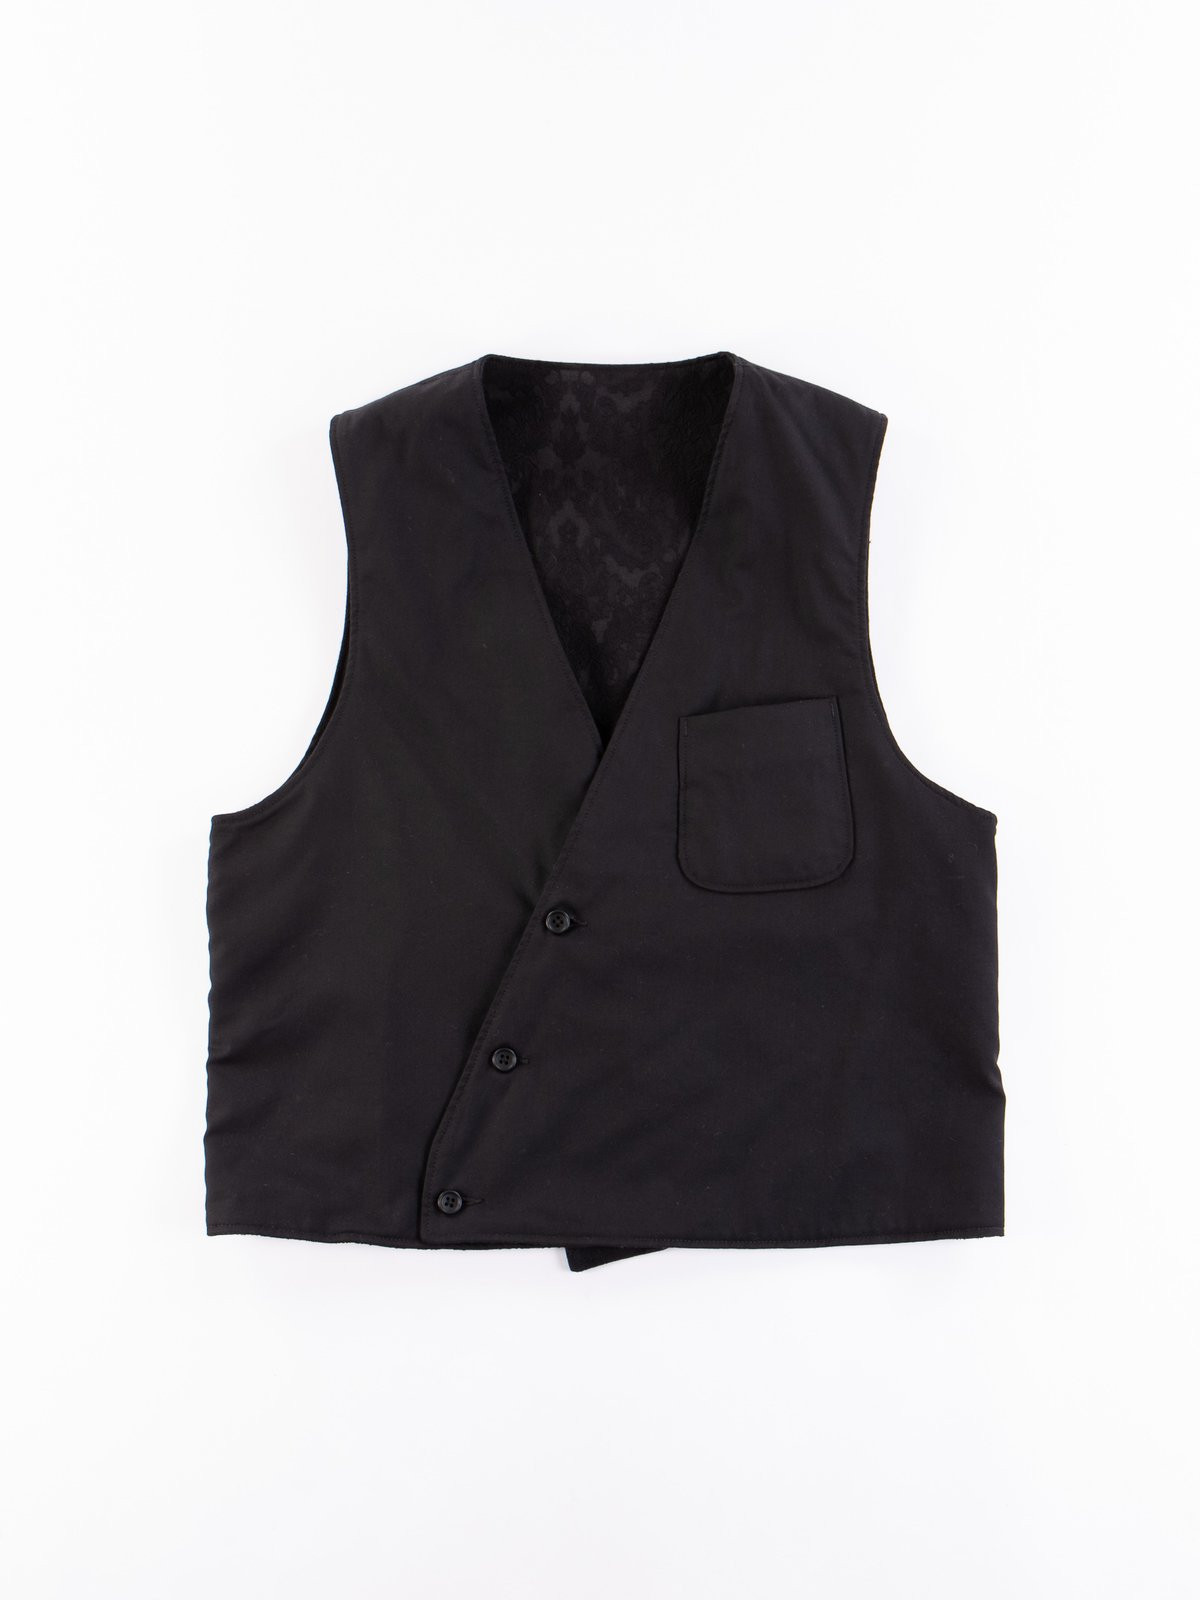 Black Worsted Wool Gabardine Reversible Vest - Image 1